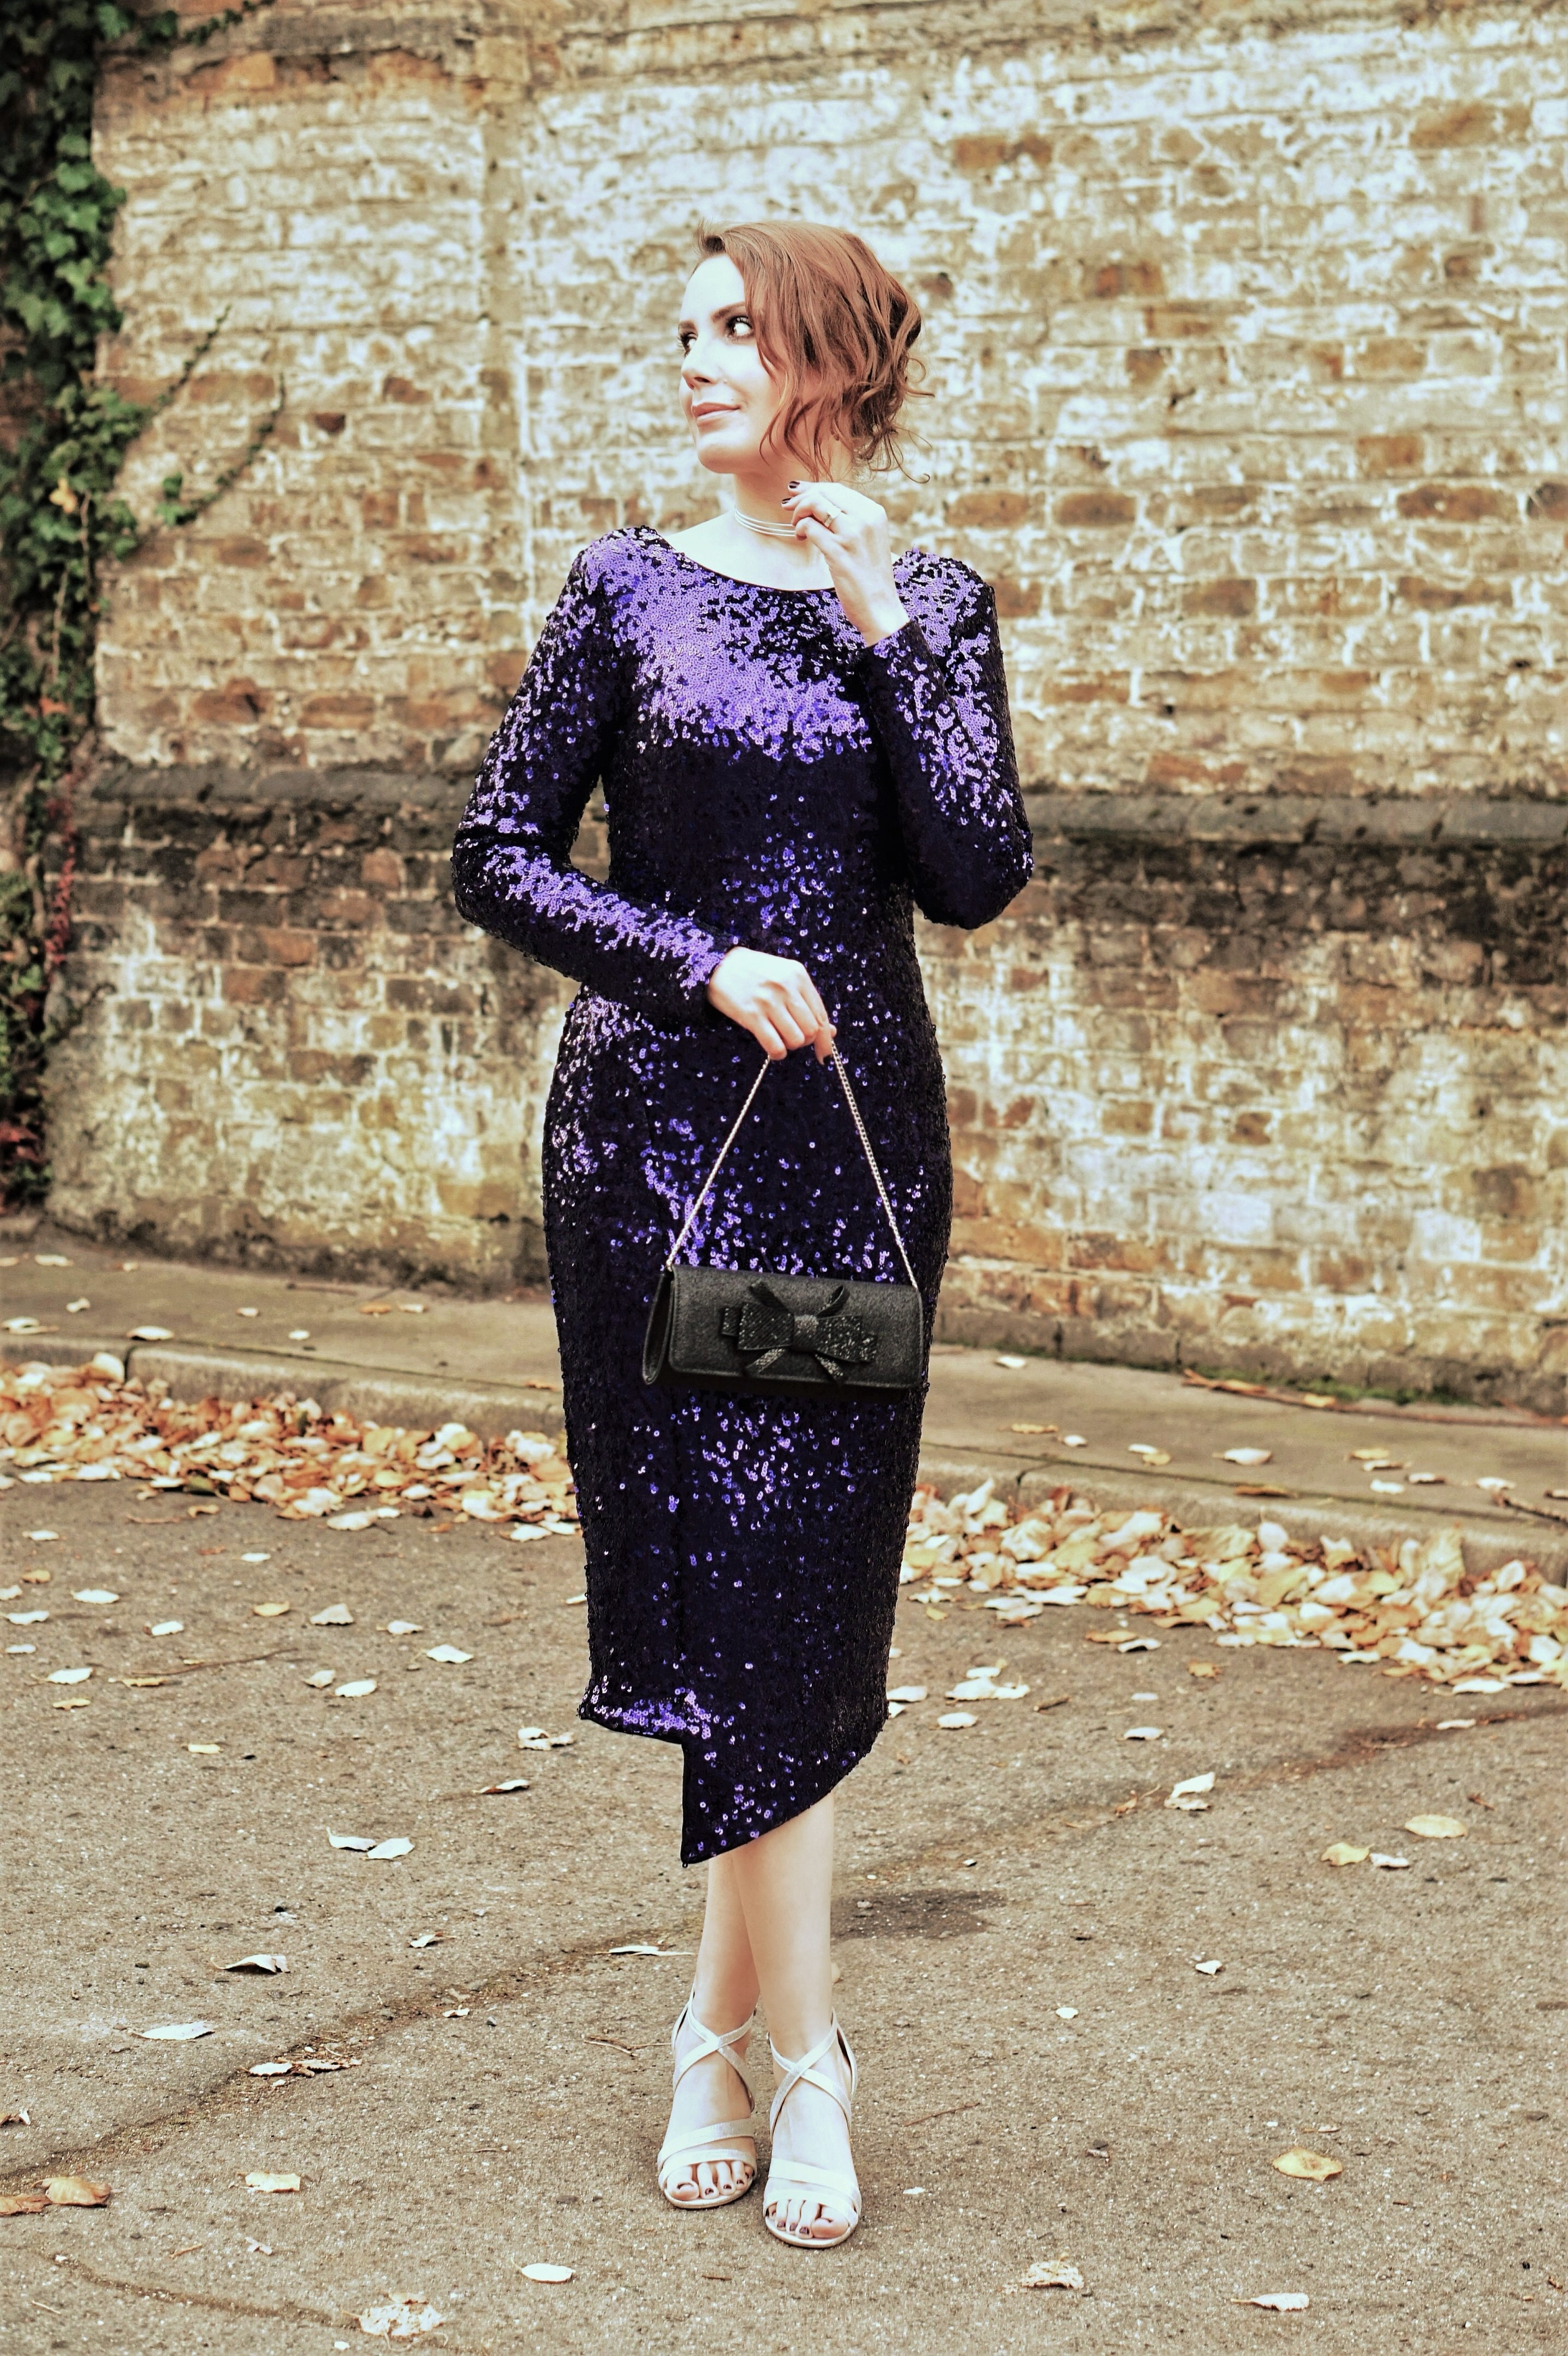 How To Find Your Perfect Party Dress - Style inspiration: purple sequin long sleeve midi length party dress, silver shoes, leaf ear climber, clutch bag.